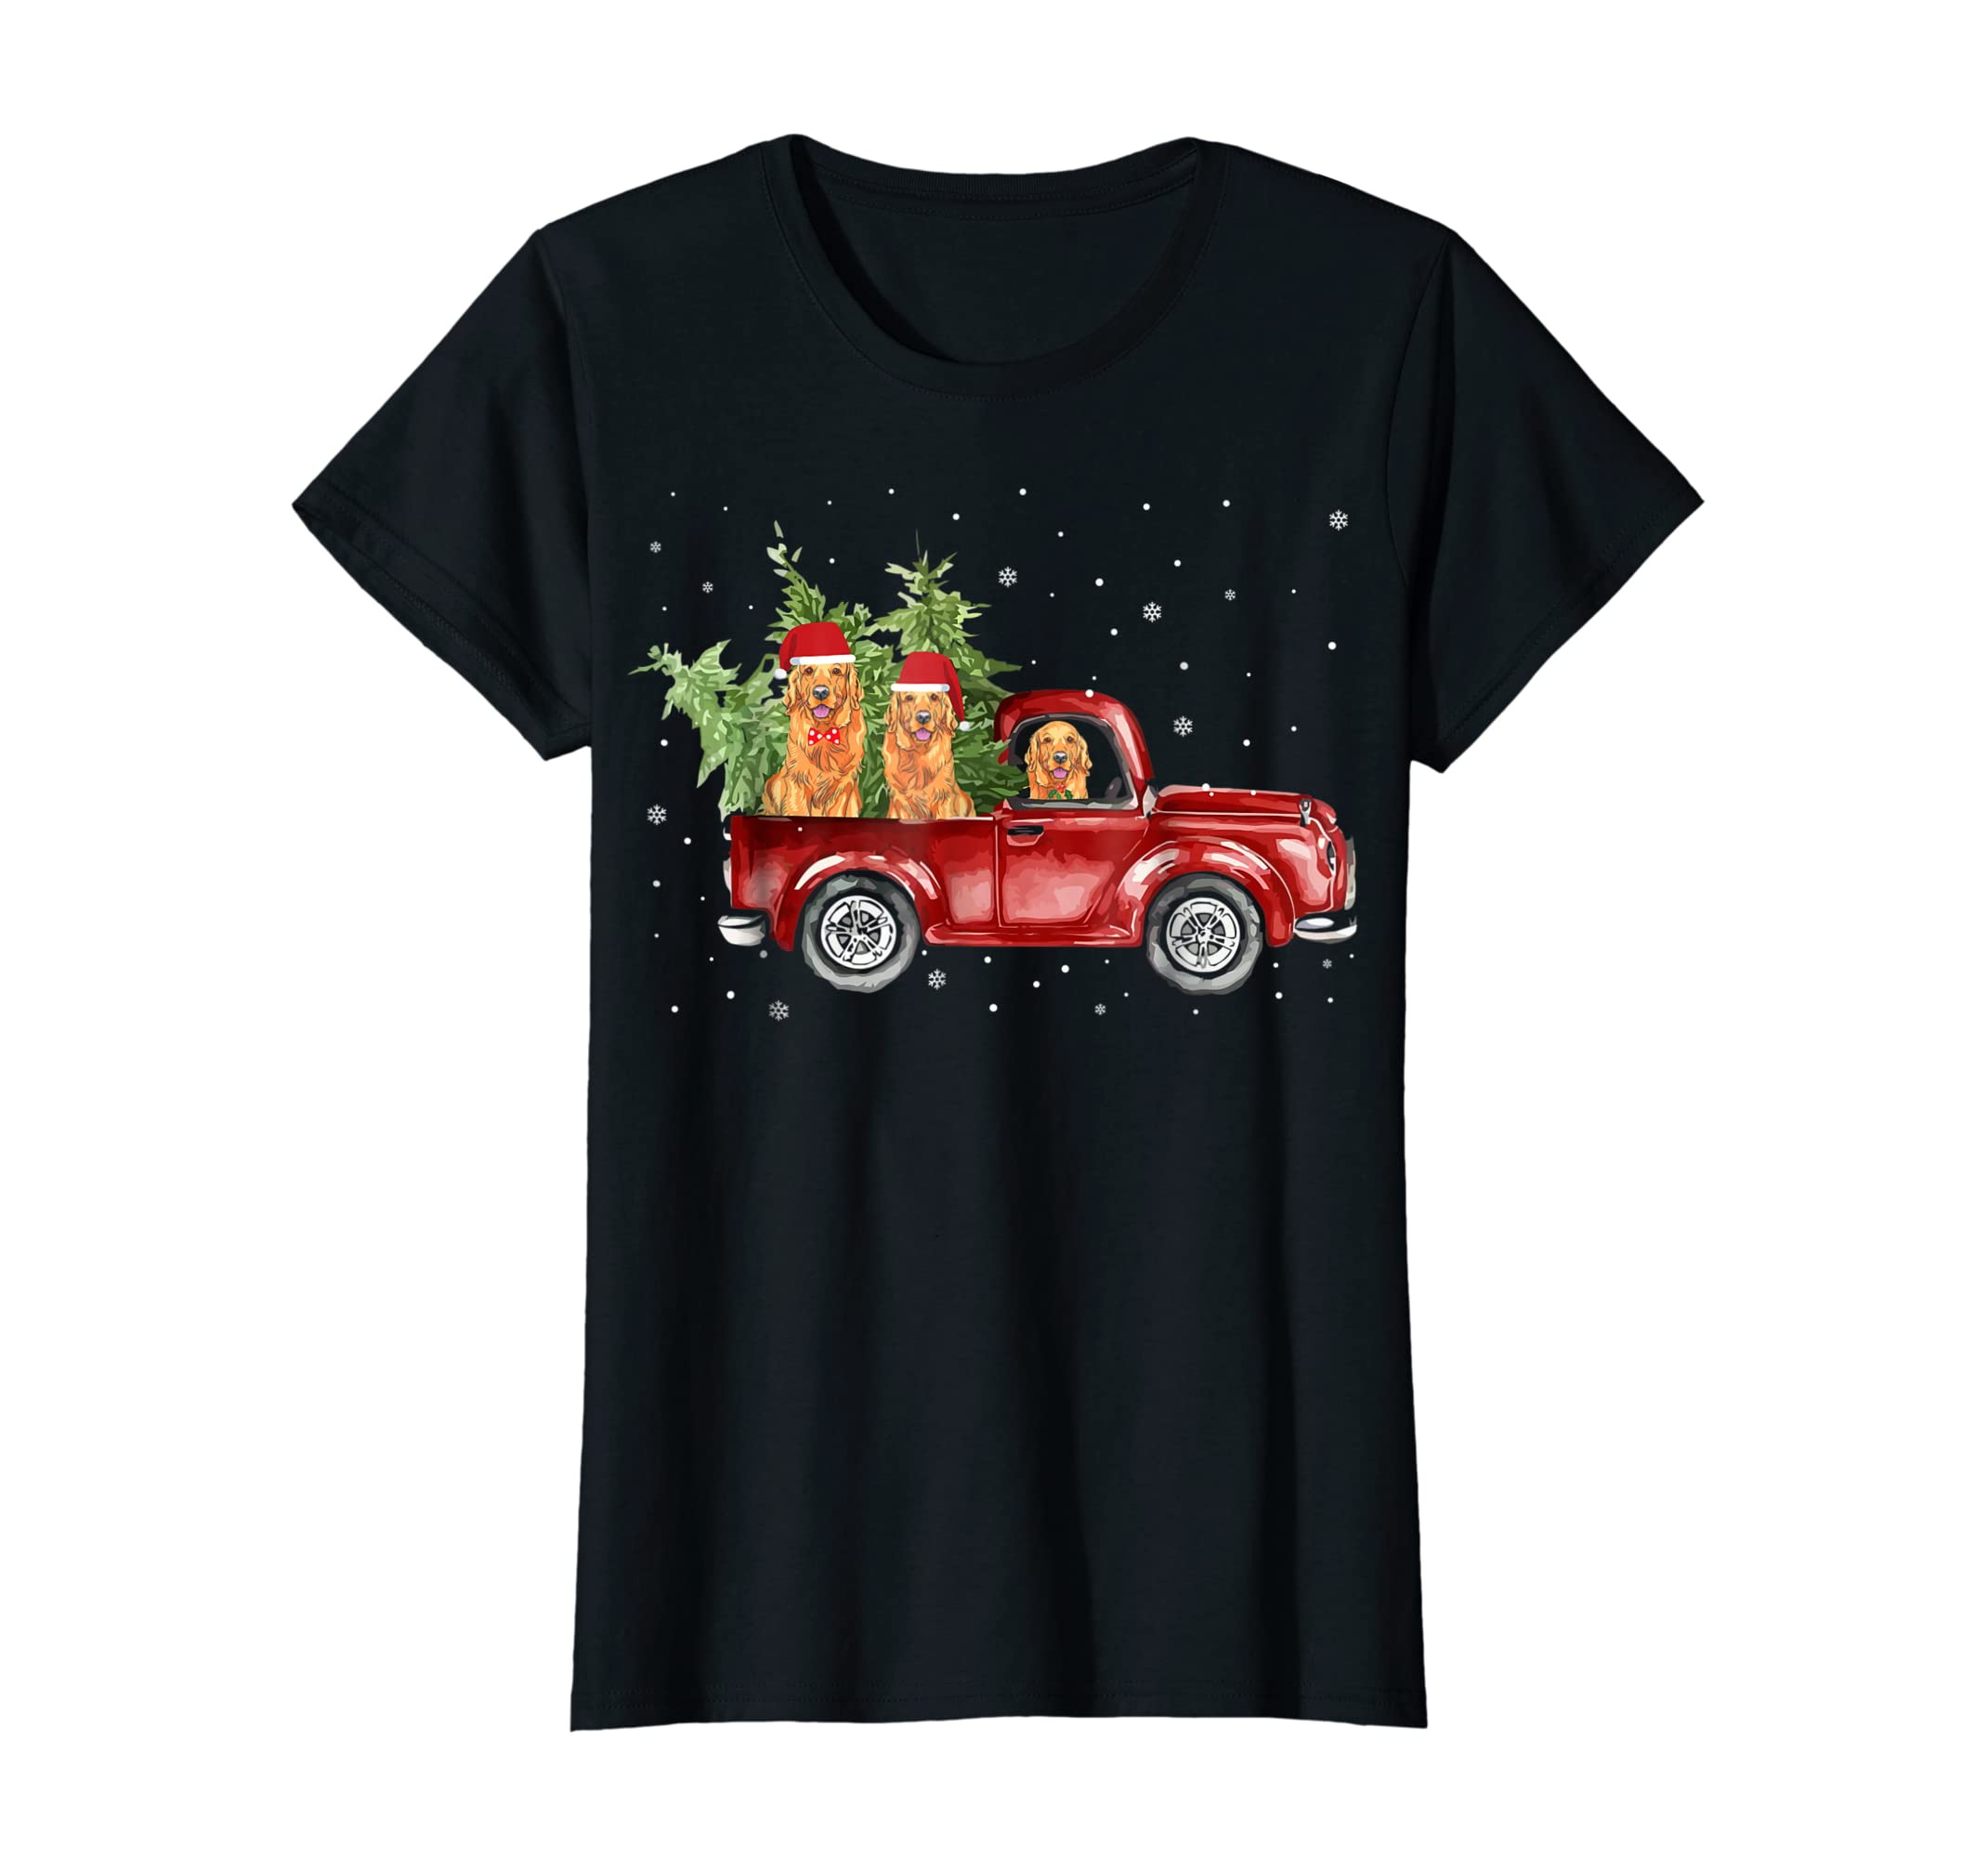 Golden Retriever Pickup Truck Christmas Tshirt-Women's T-Shirt-Black